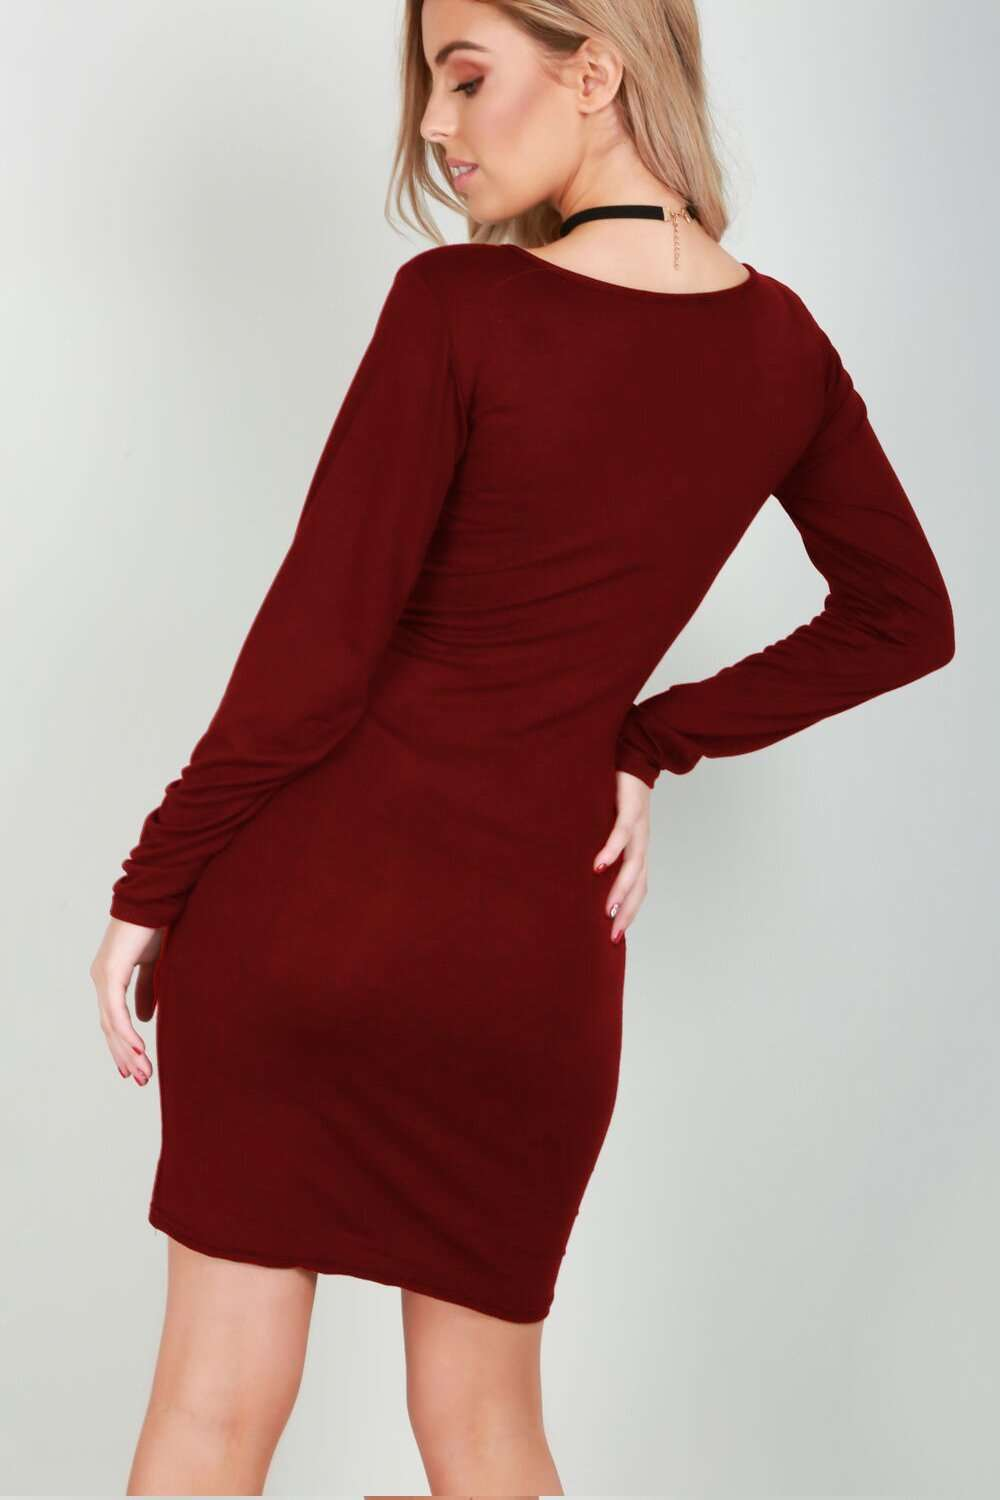 Long Sleeve Mummy's Christmas Pudding Maternity Dress - bejealous-com